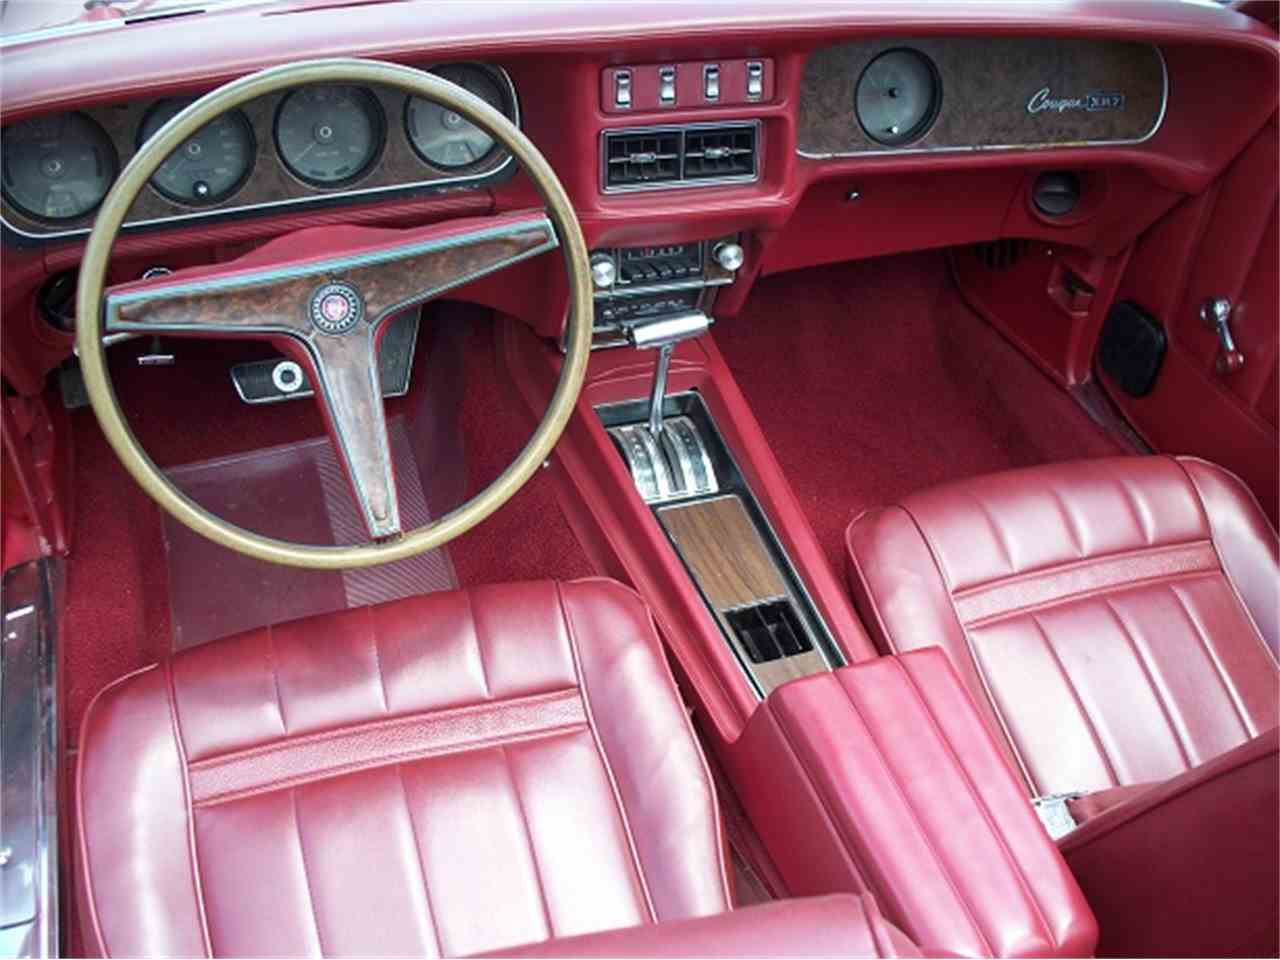 Large Picture of '69 Cougar XR7 located in CYPRESS Texas - $29,995.00 - LFML